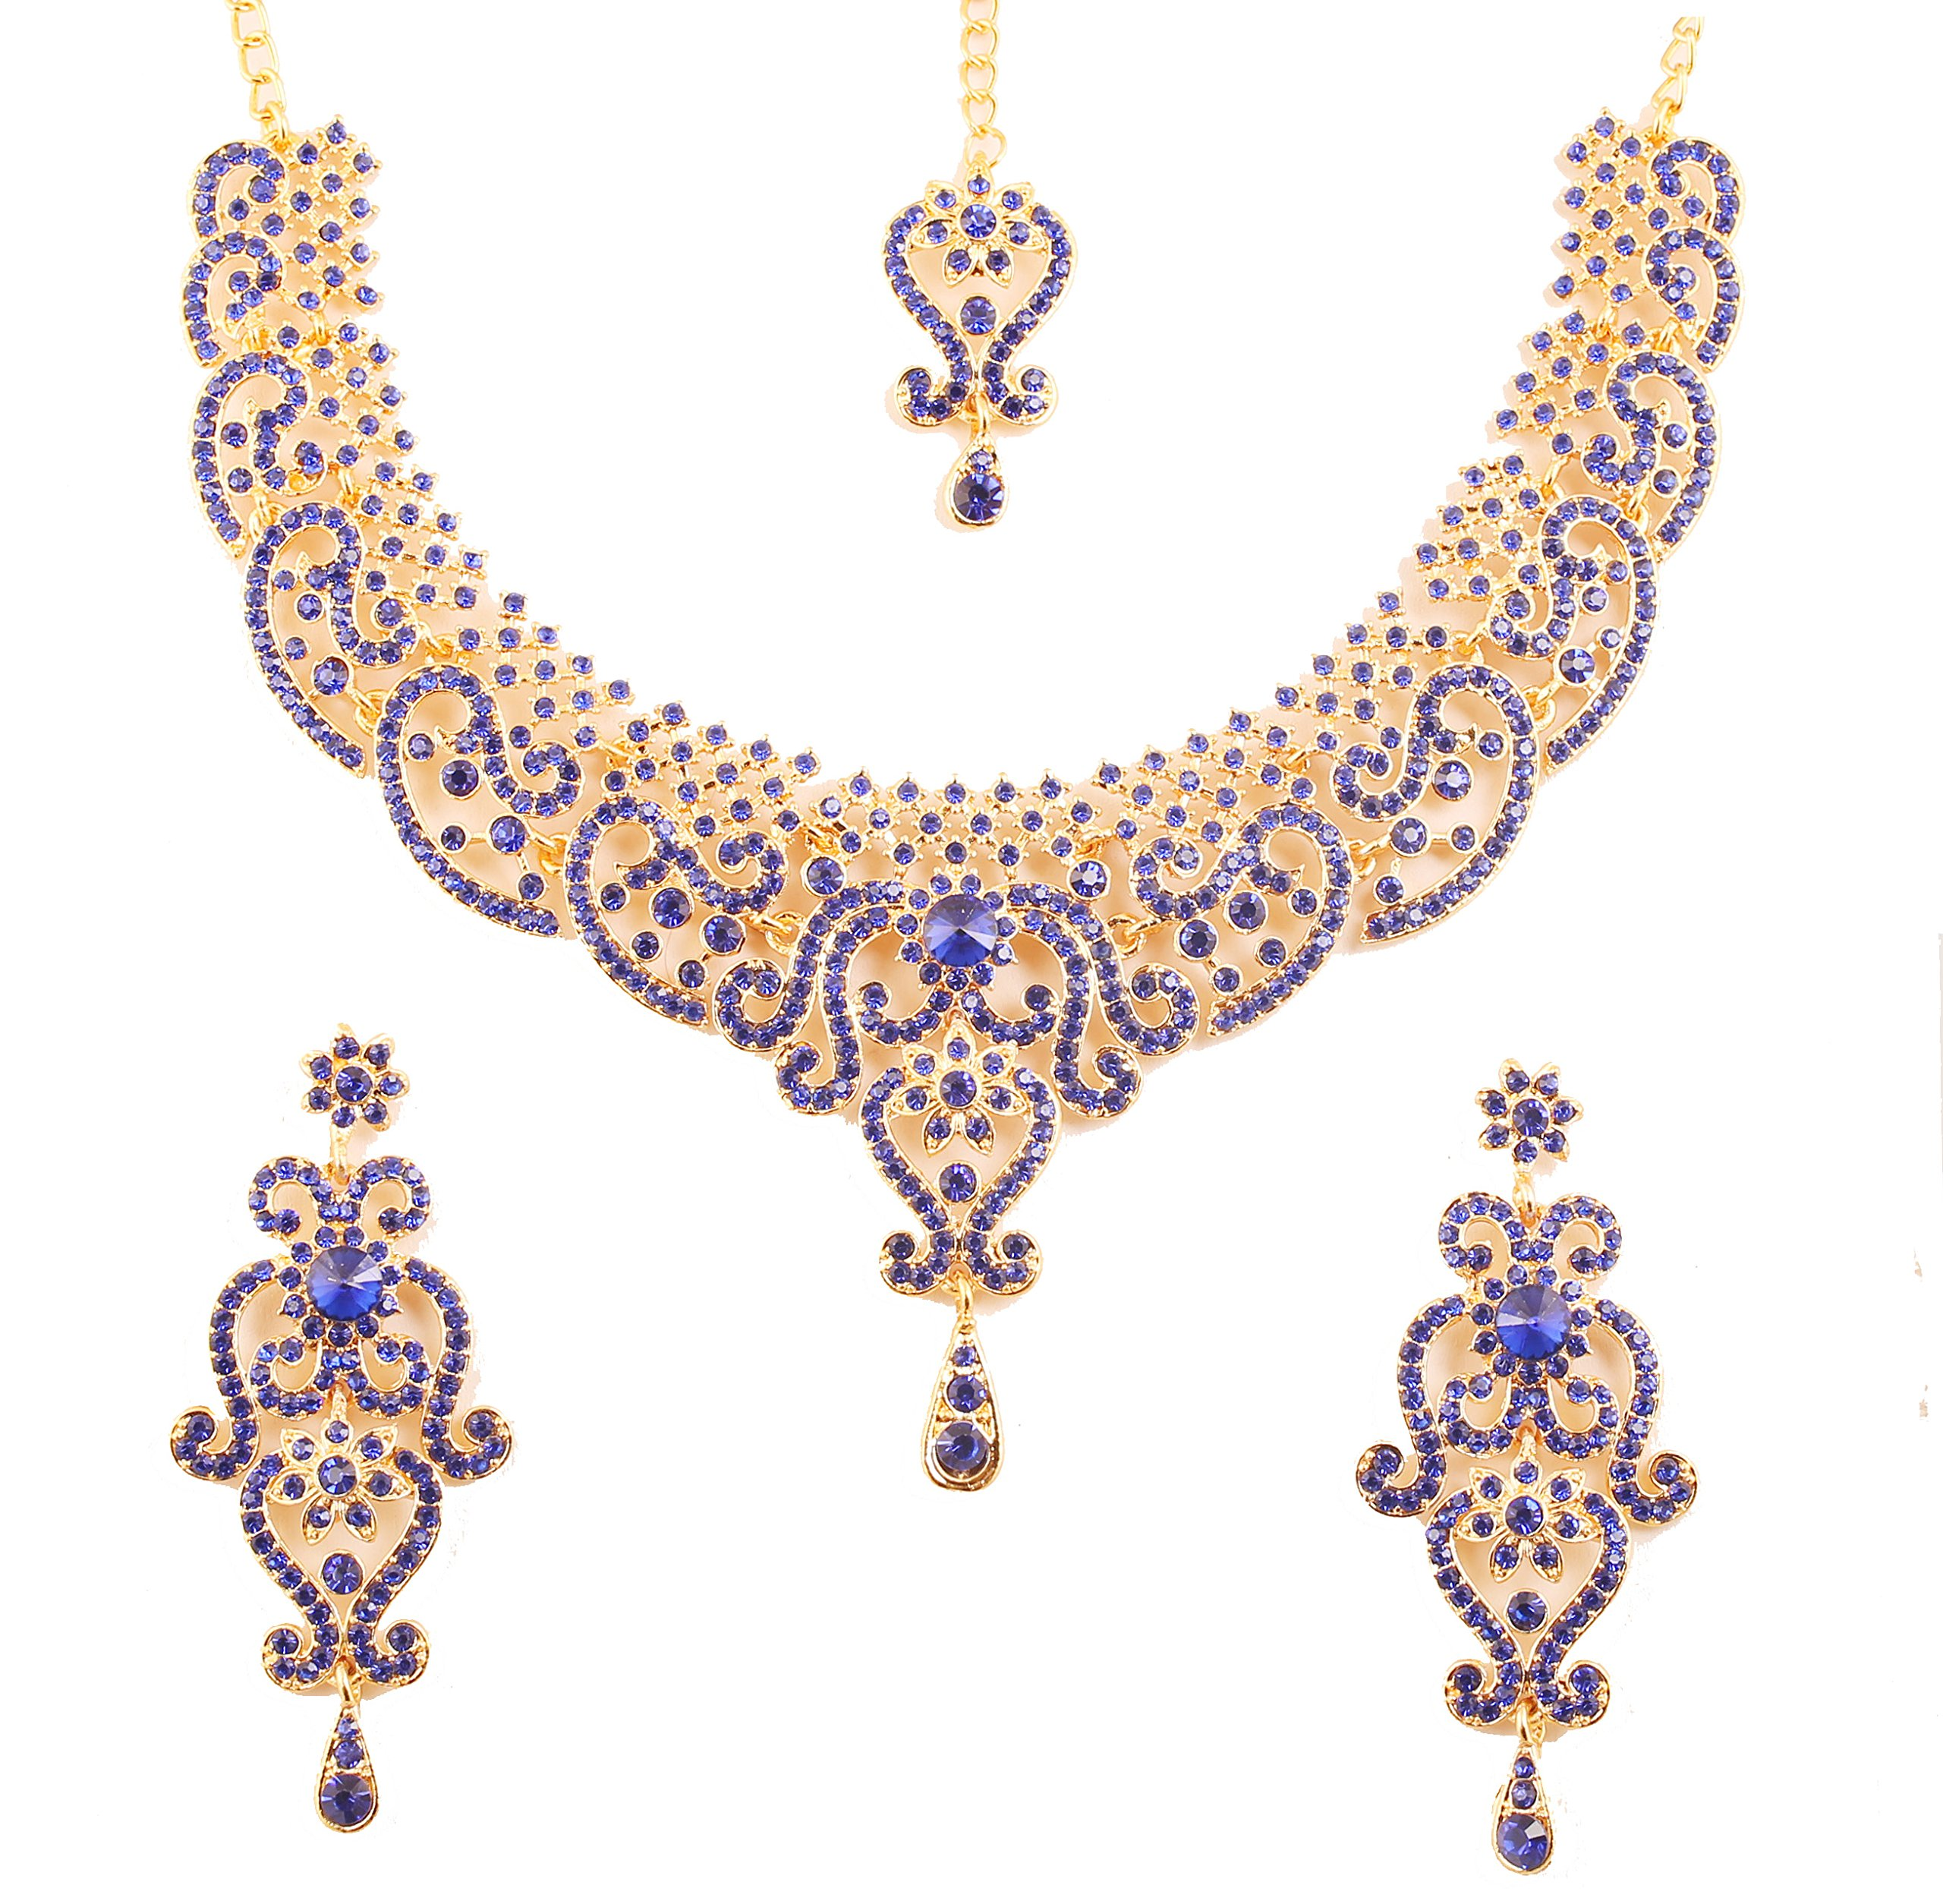 Touchstone New Indian Bollywood Fine Filigree Red Faux Grand Bridal Jewelry Necklace Set in Antique Gold Tone for Women.